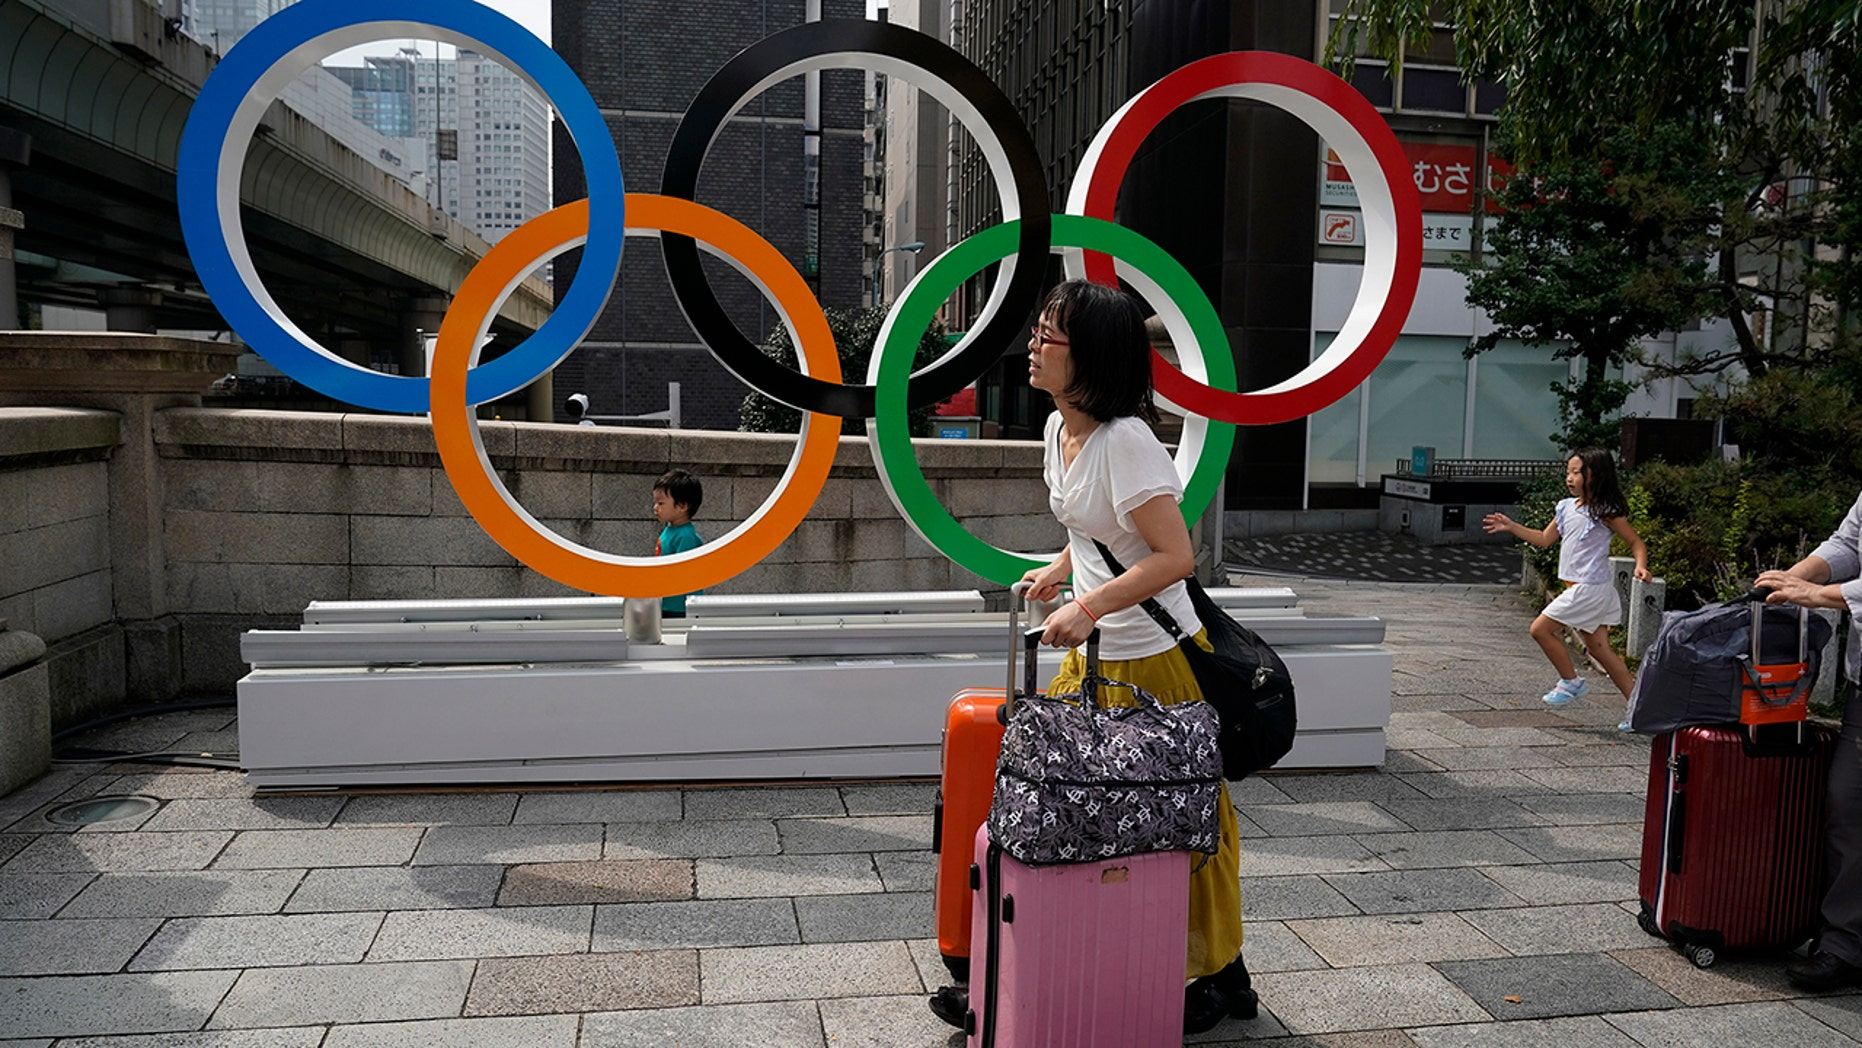 "FILE - In this file photo from August 19, 2019, tourists pass by with their luggage at the Olympic rings in Tokyo. Japan's frustrated residents once again had the opportunity to attend the Tokyo Olympics when the organizers spent around 1<div class=""e3lan e3lan-in-post1""><script async src=""//pagead2.googlesyndication.com/pagead/js/adsbygoogle.js""></script>